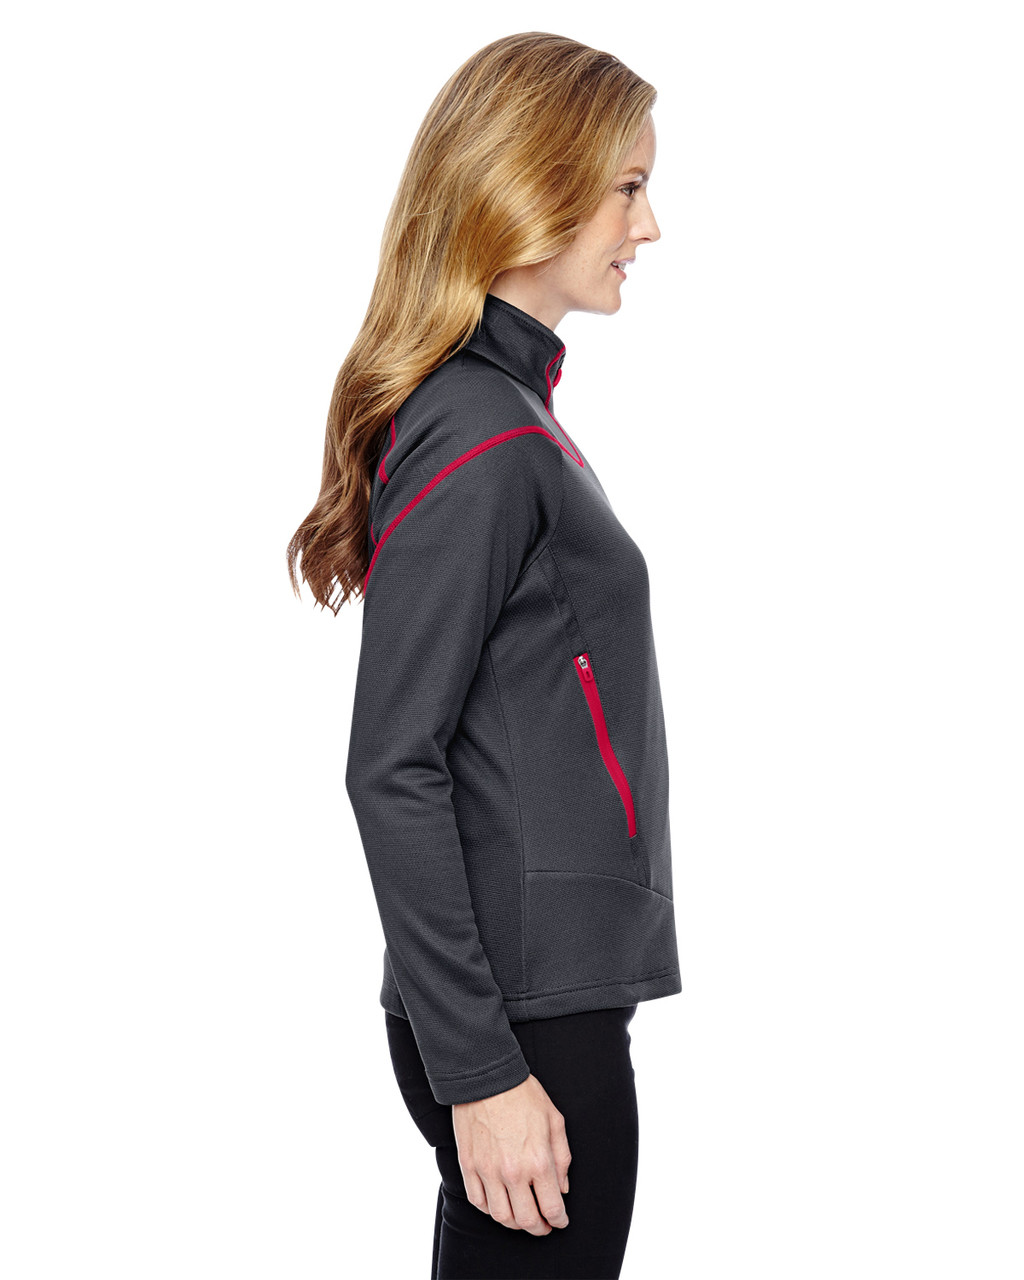 Carbon/Olympic Red-side 78806 North End Sport Red Interactive Cadence Two-Tone Brush Back Jacket